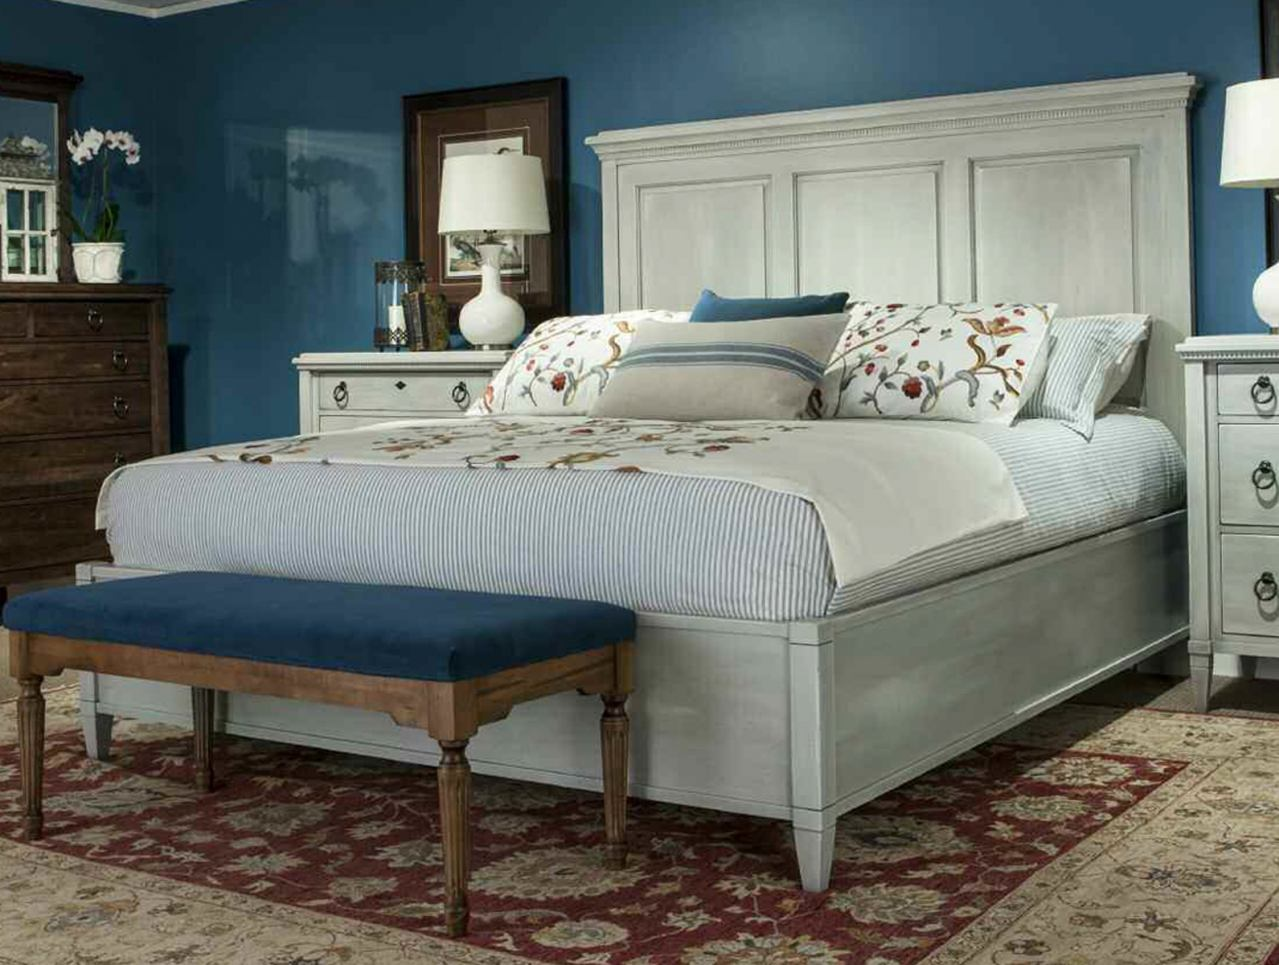 Durham Furniture Springville King Panel Bed in Greystone 145-144-GRST